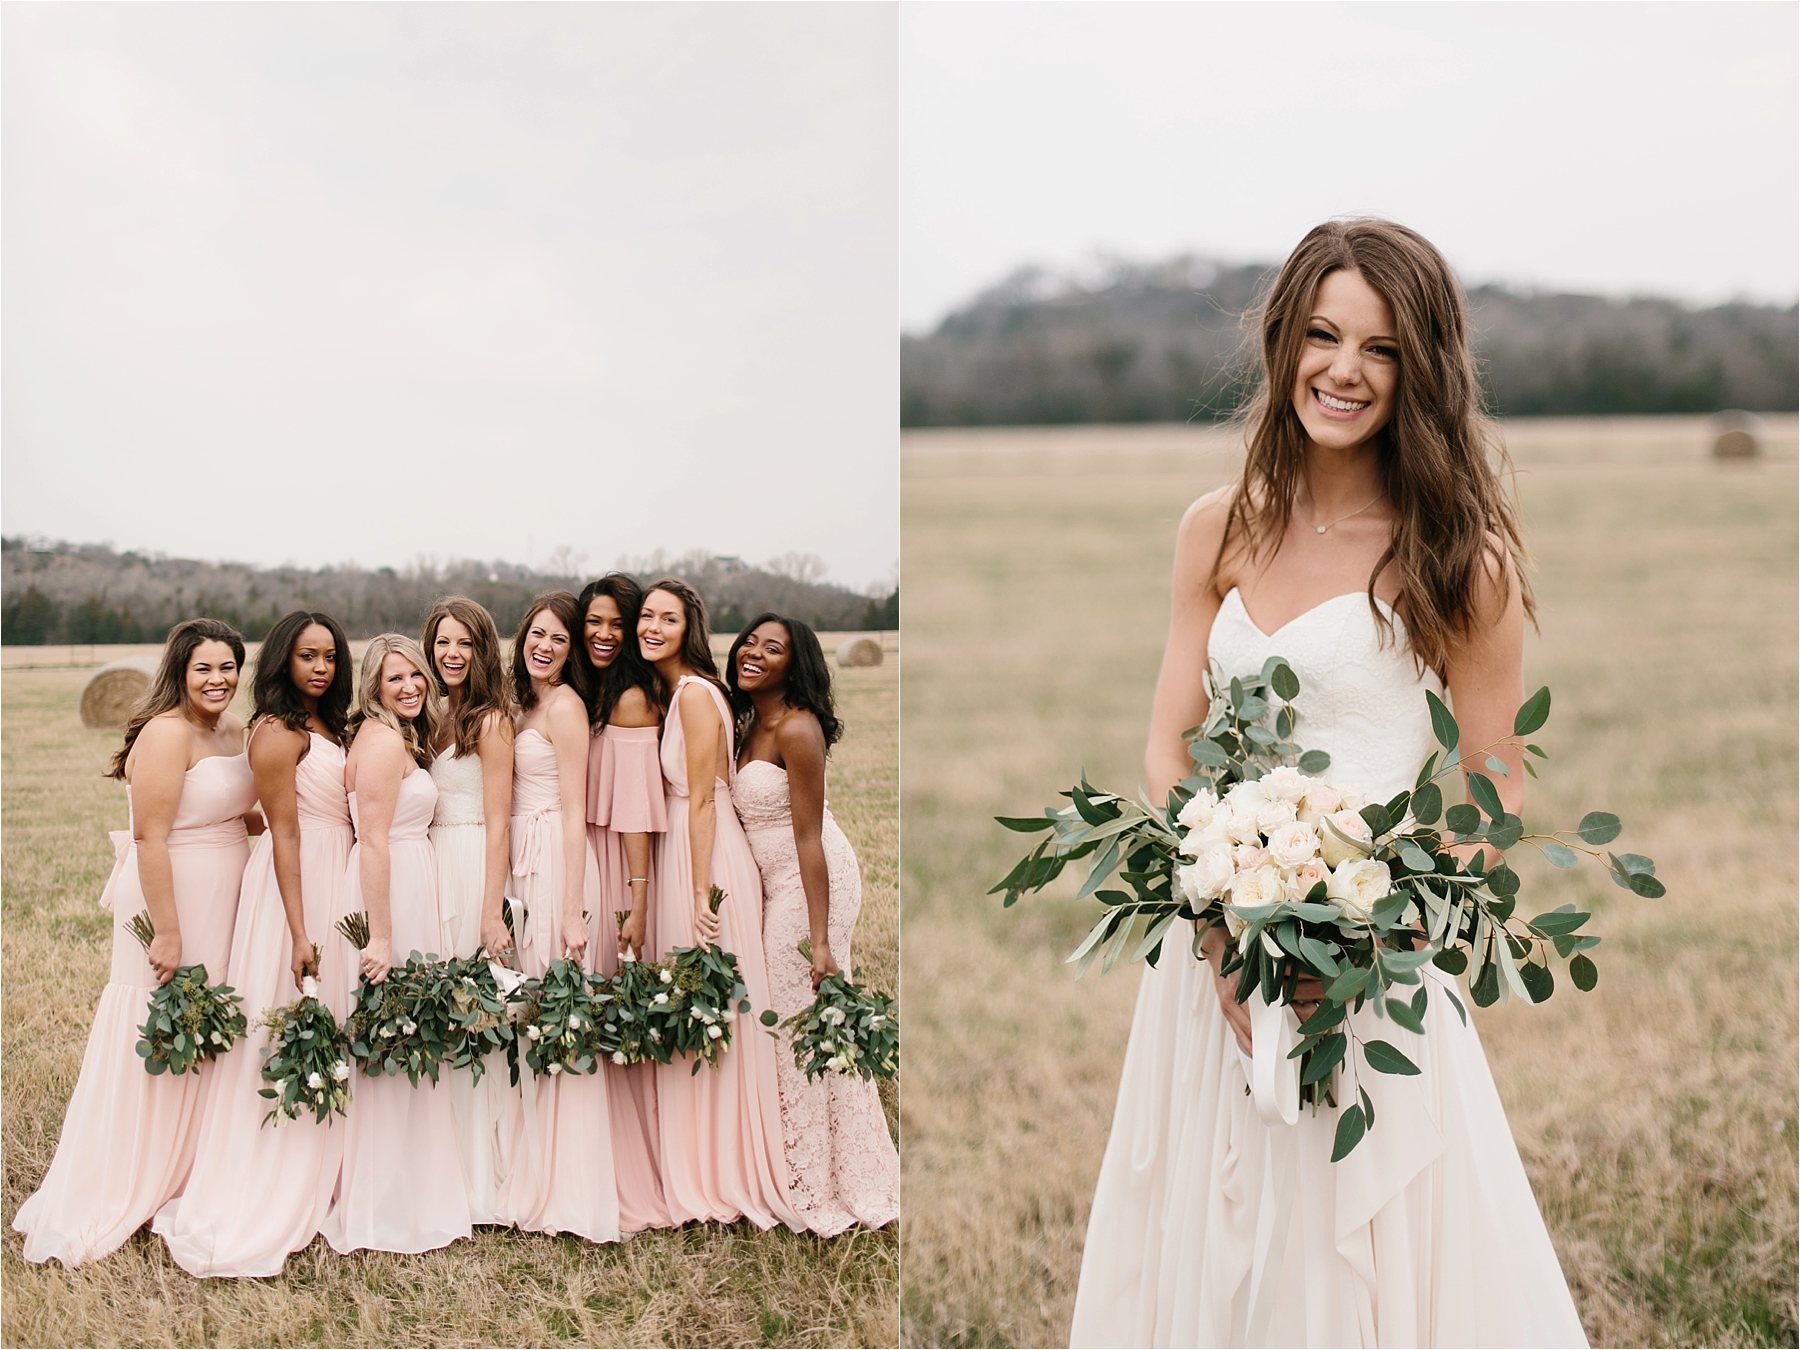 Lauren + Matt __ an intimate, emotional, blush pink, navy blue, and greenery toned wedding accents at the Brooks at Weatherford by North Texas Wedding Photographer Rachel Meagan Photography077